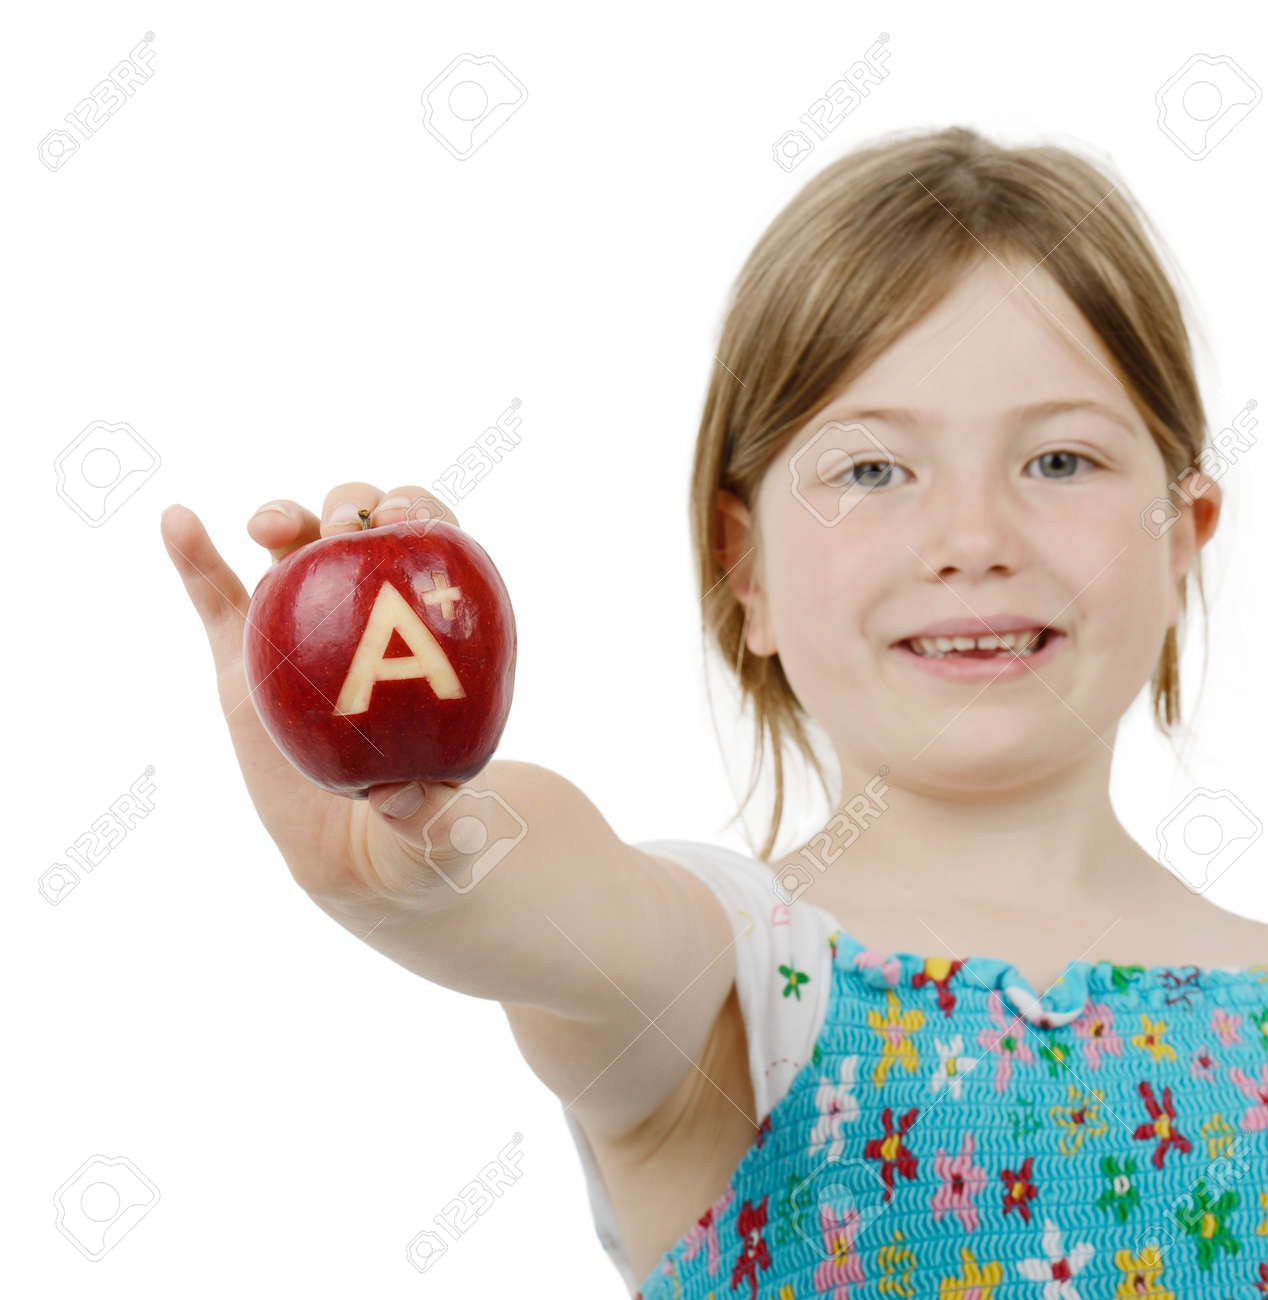 7c72a5dbadb0 School Girl With Top Marks An A Plus Symbol On A Red Apple